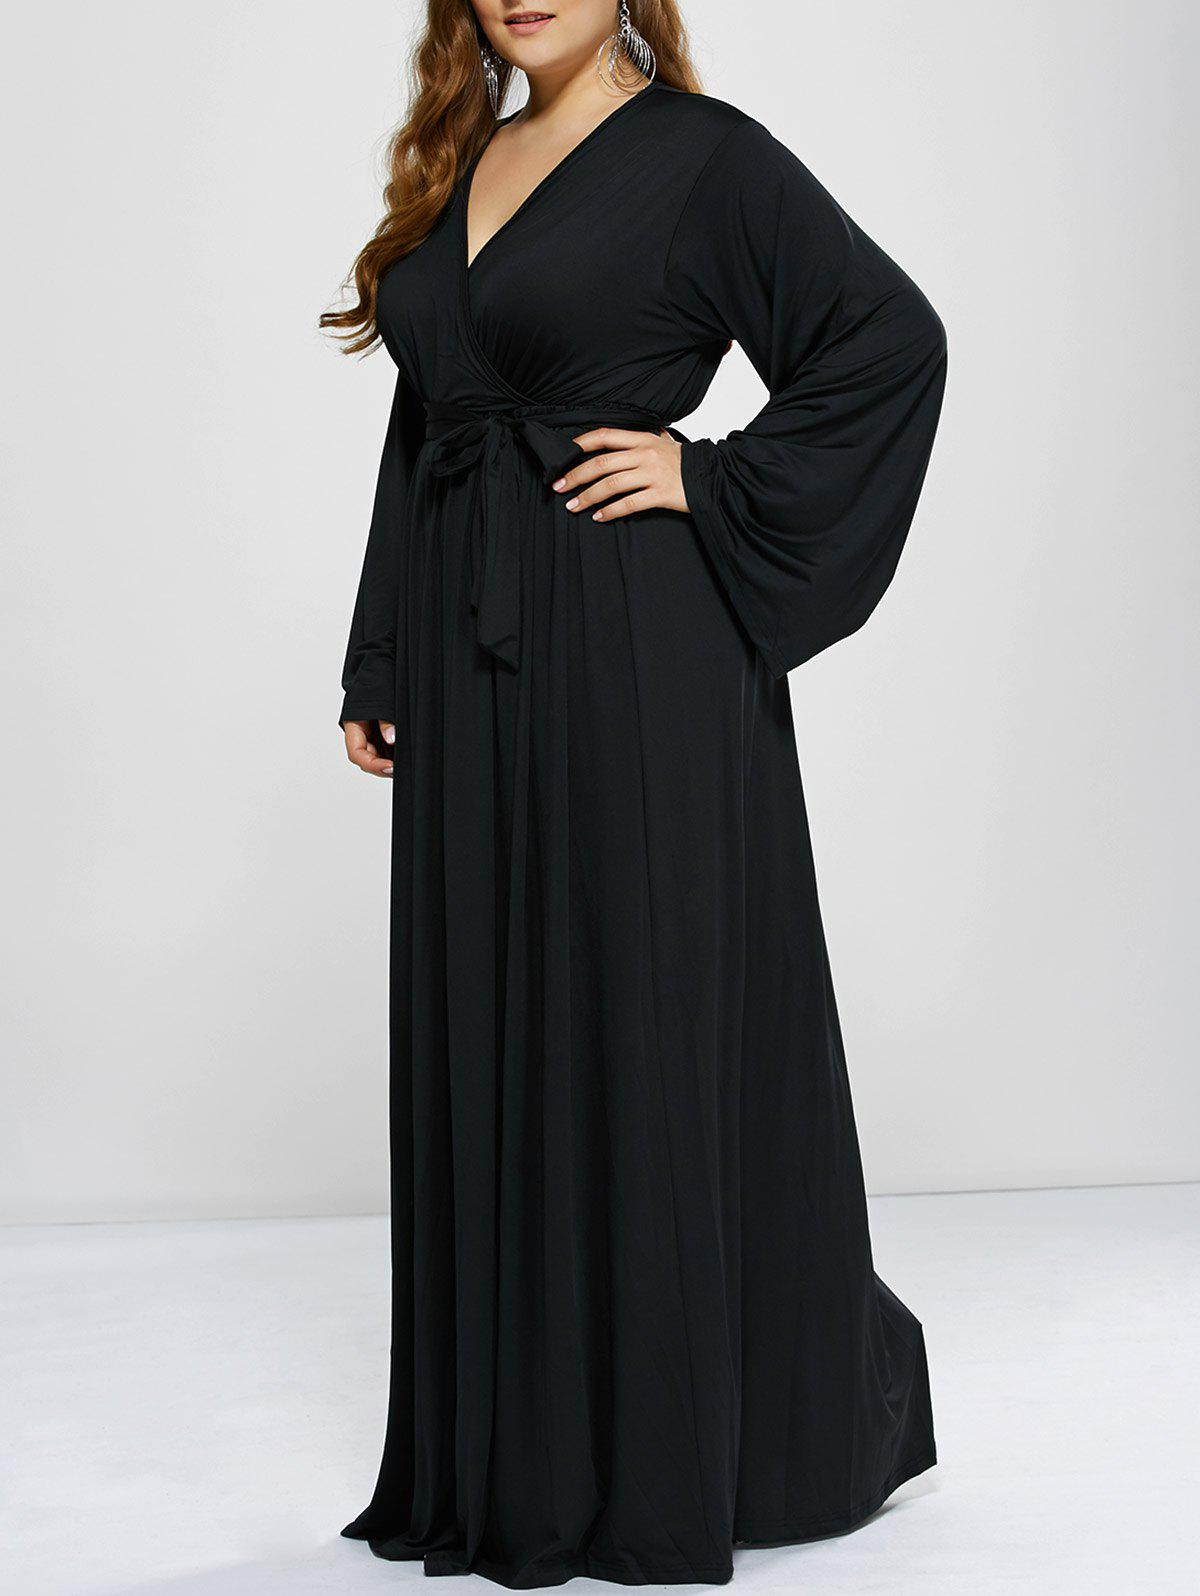 Plus Size Long Sleeve Modest Maxi Formal Dress - BLACK L